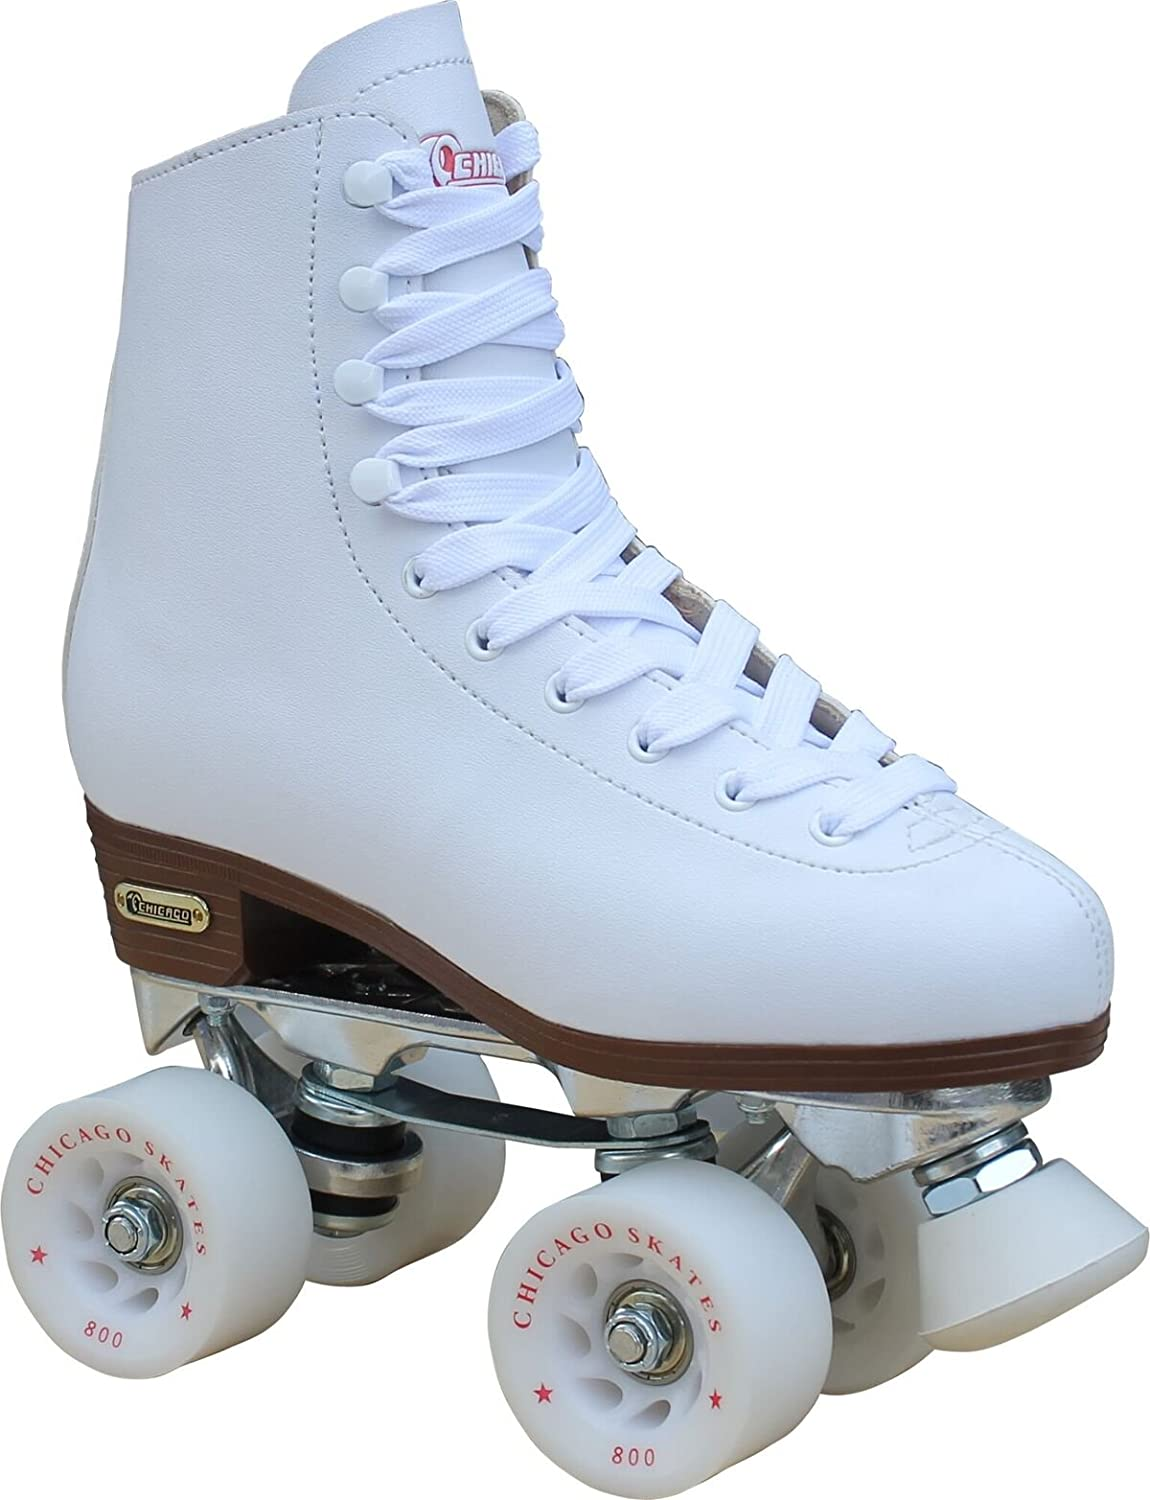 Chicago Women's Leather Lined Rink Skate